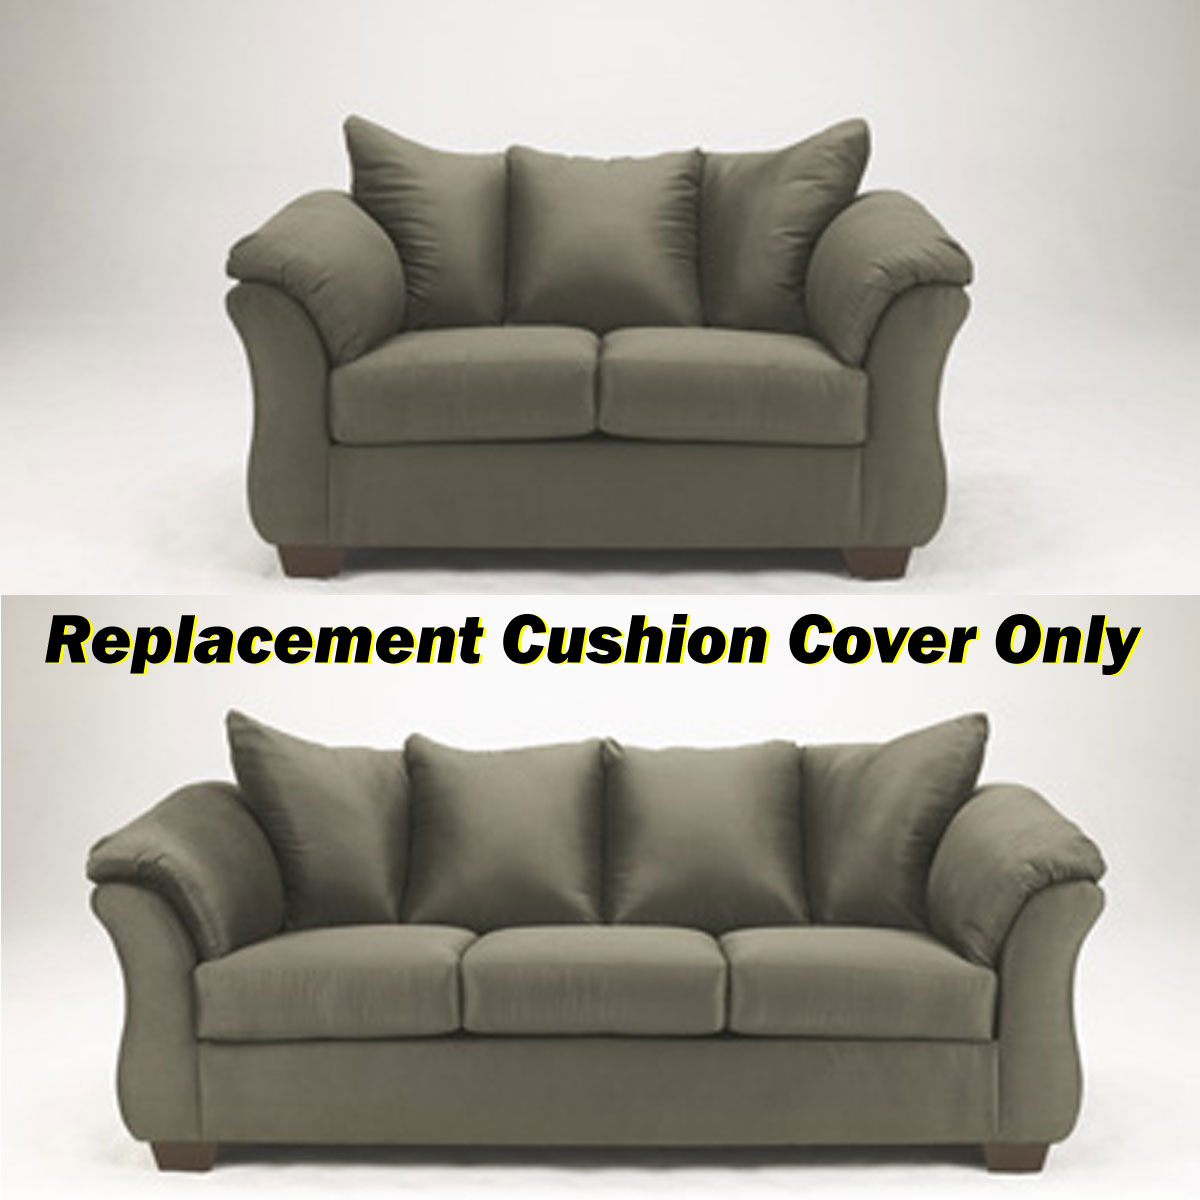 how to replace sofa cushion covers home goods cushions ashley darcy replacement cover only 7500338 or